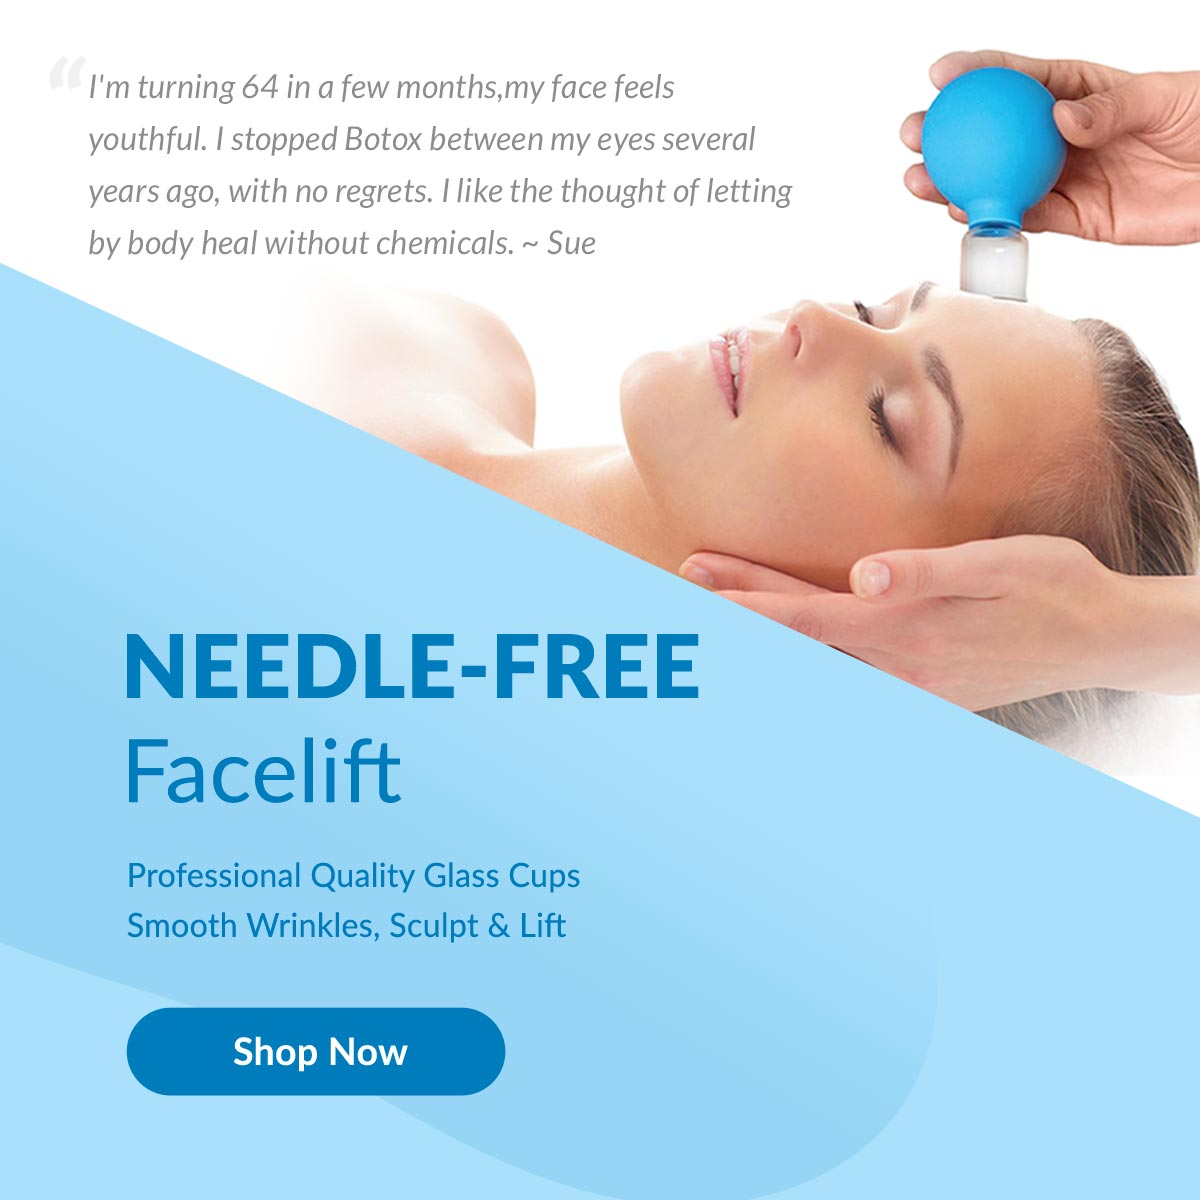 Woman with facial cupping - Needle-Free Facelift